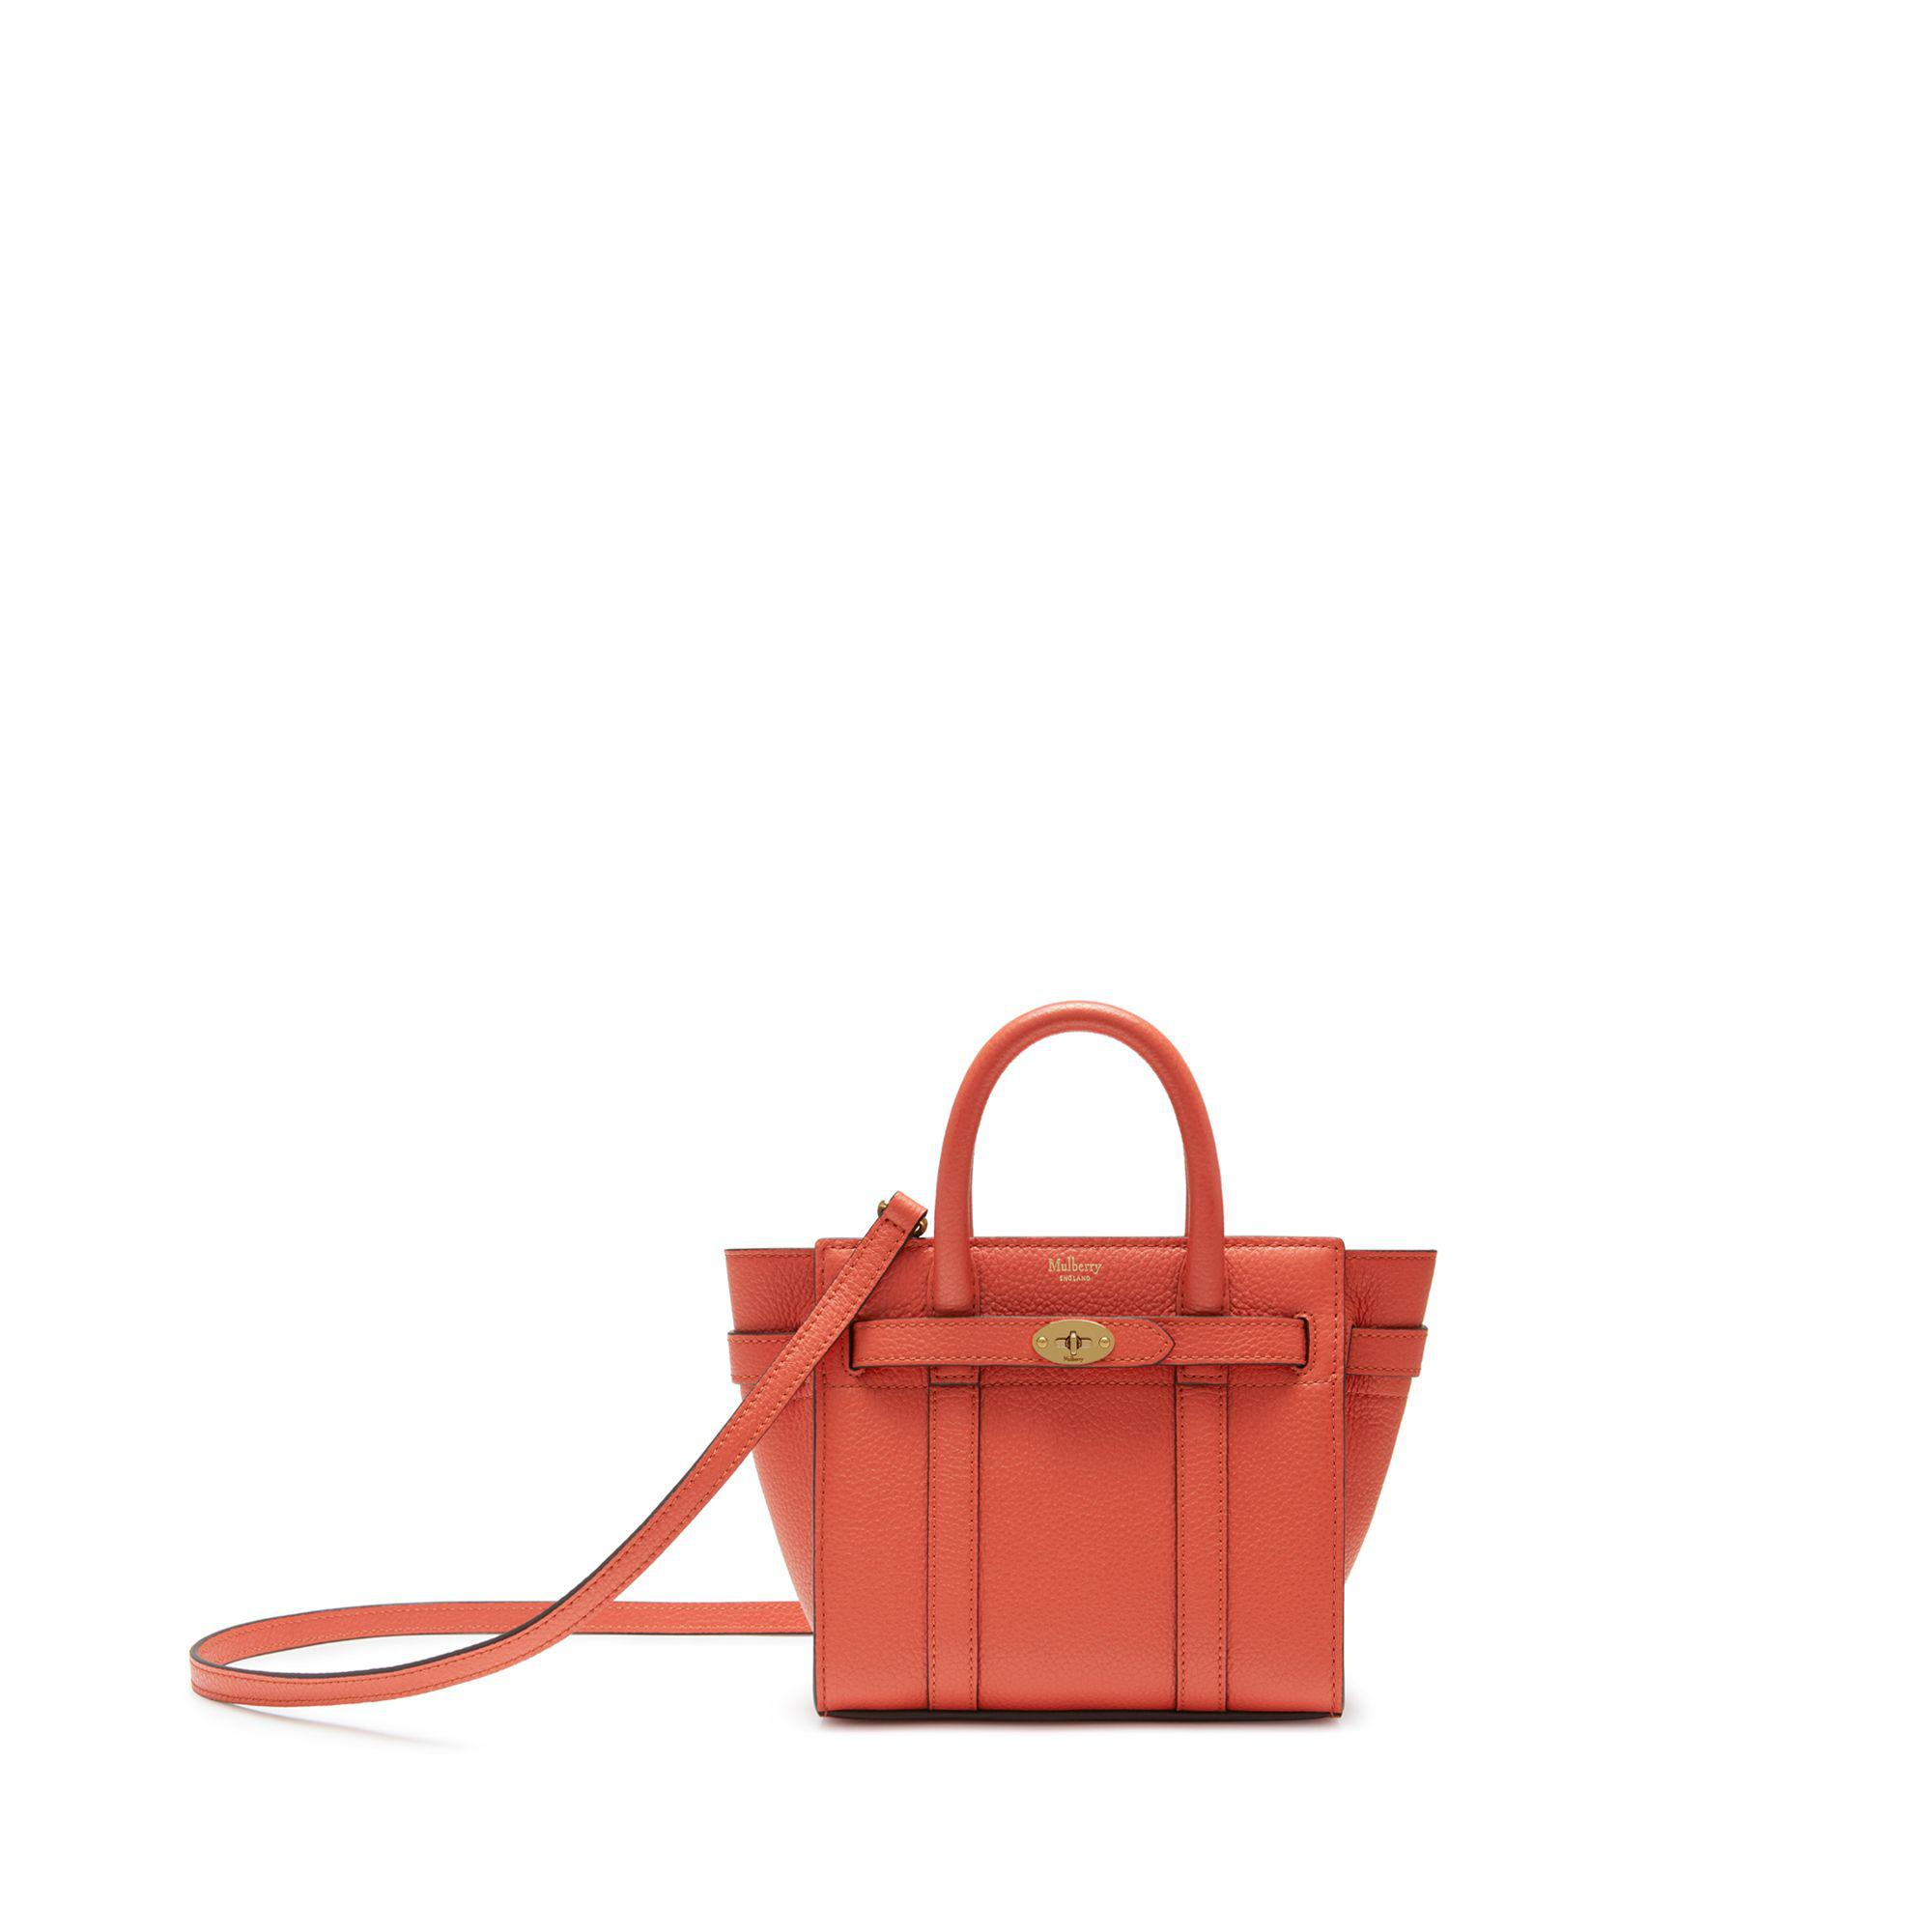 Lyst - Mulberry Micro Zipped Bayswater In Coral Rose Small Classic ... 3ea4b8b209126